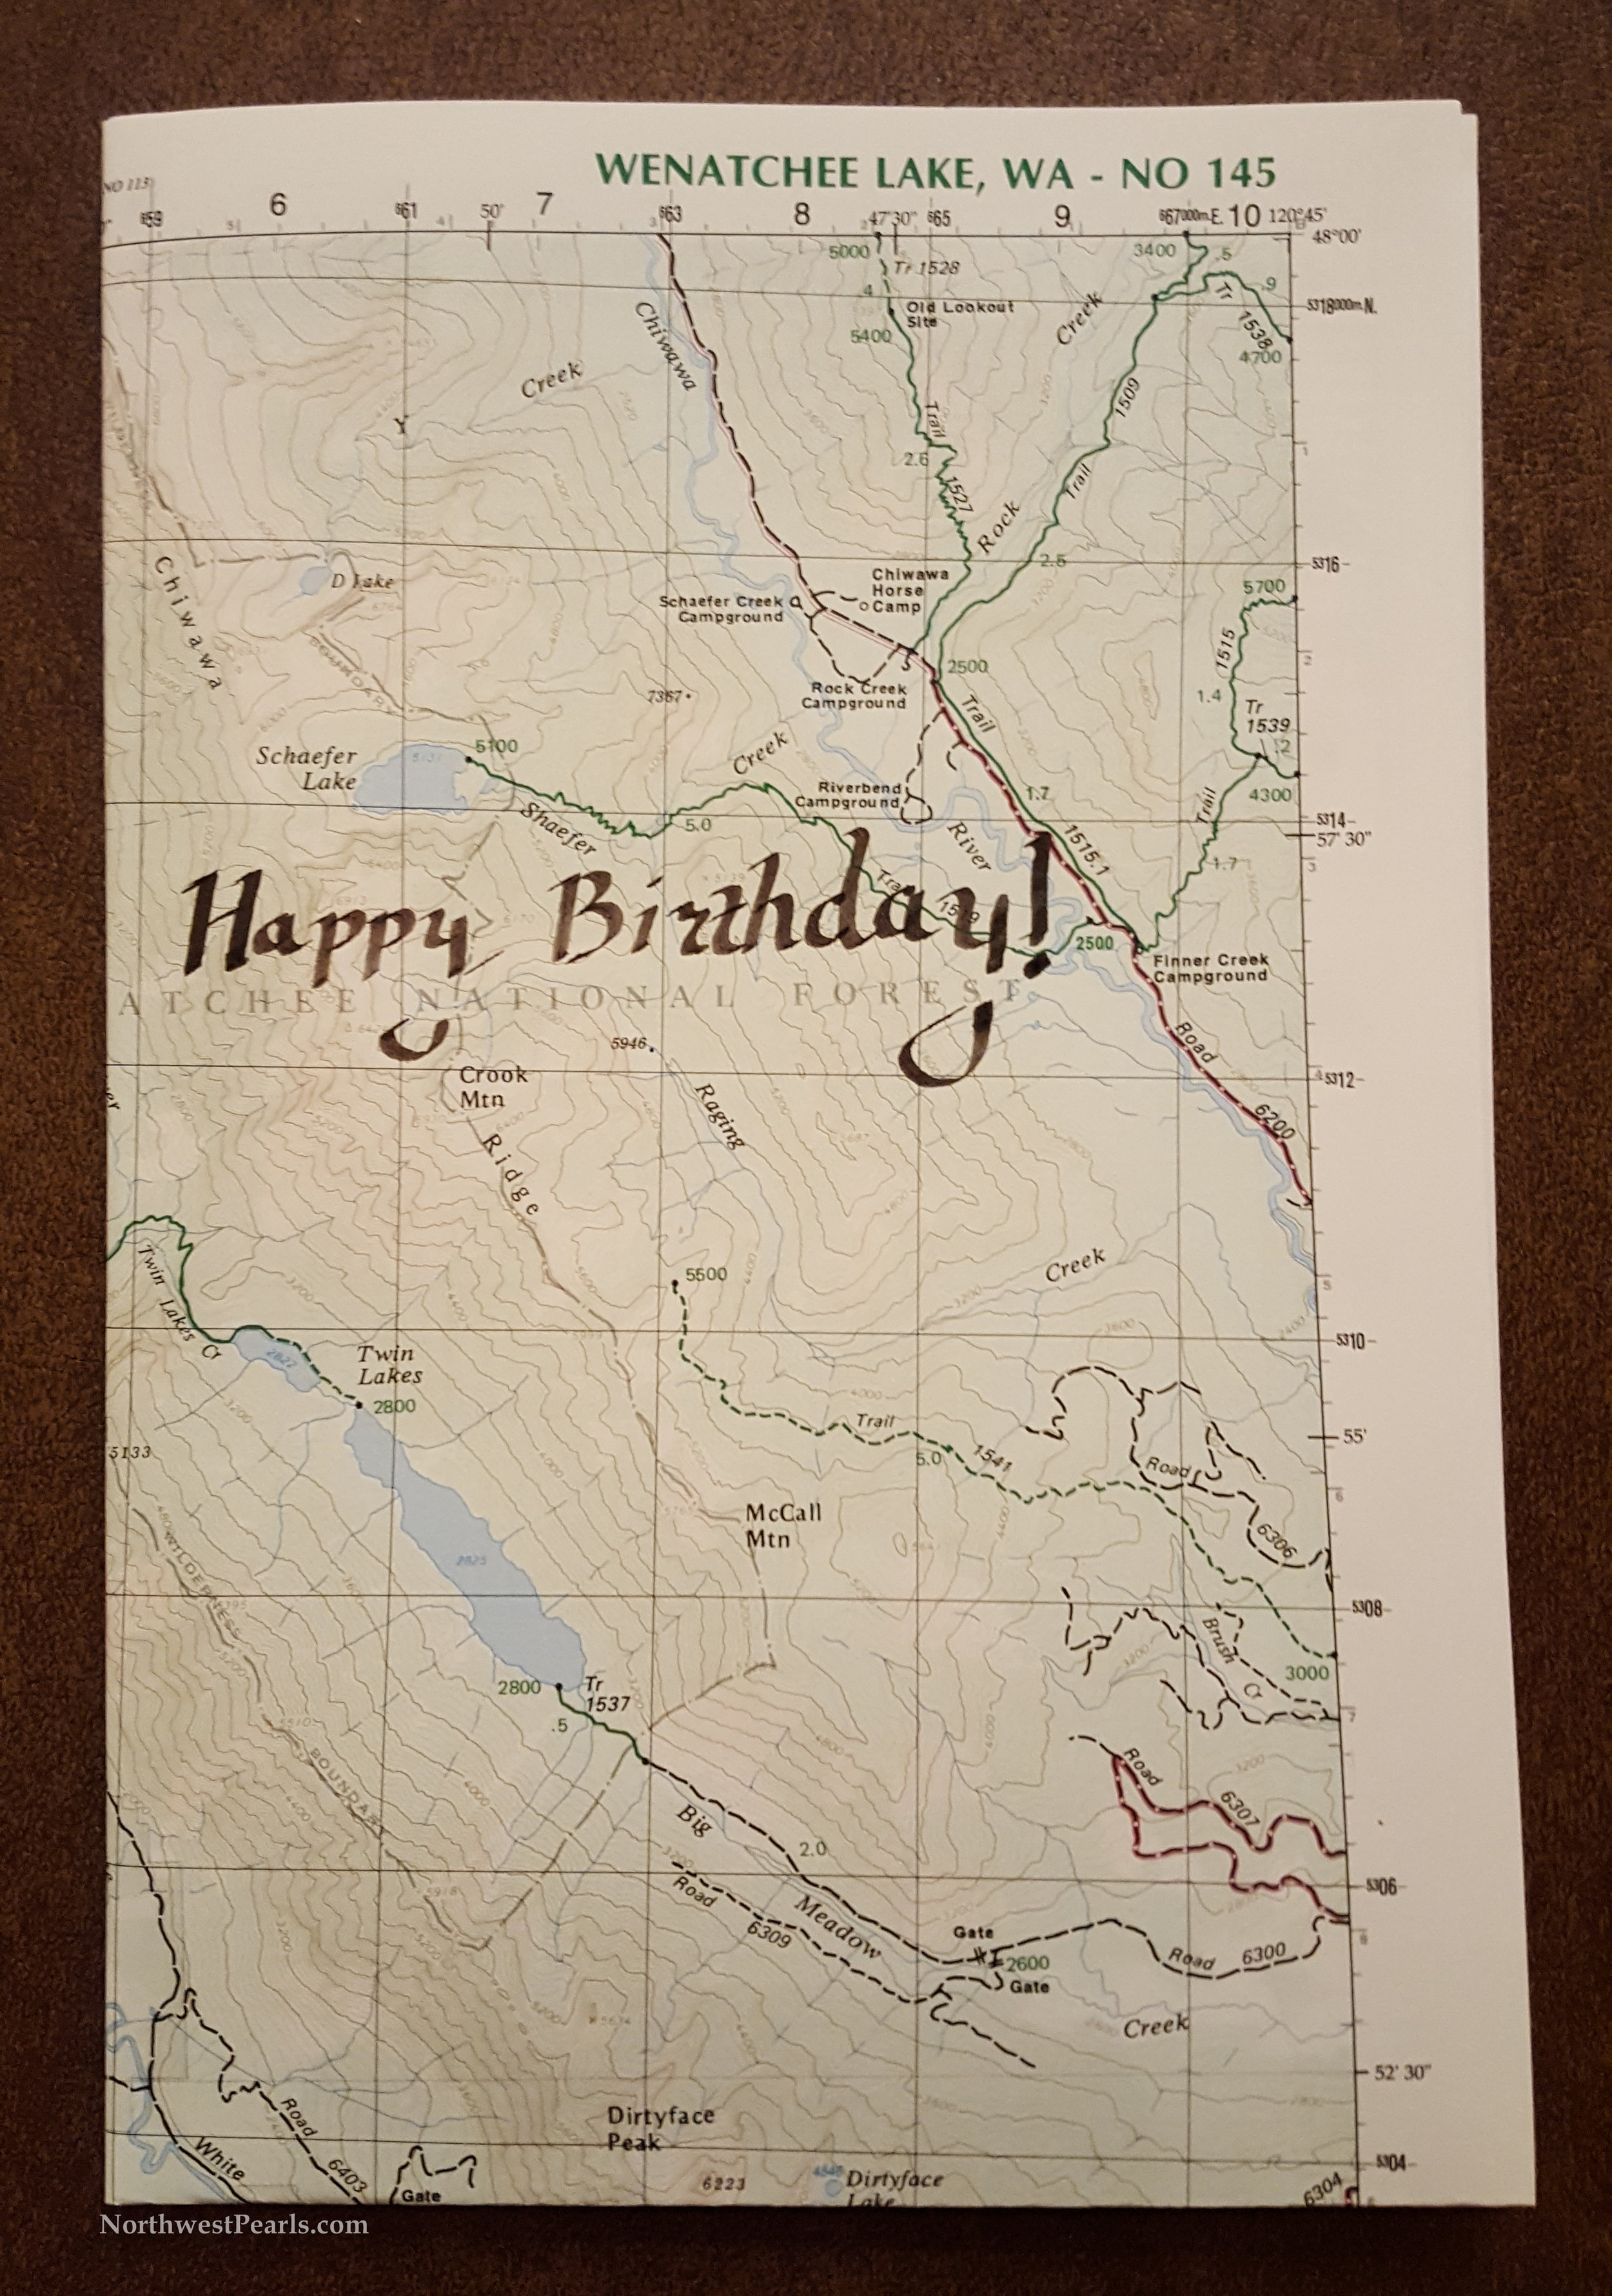 birthday-card-map-2.jpg